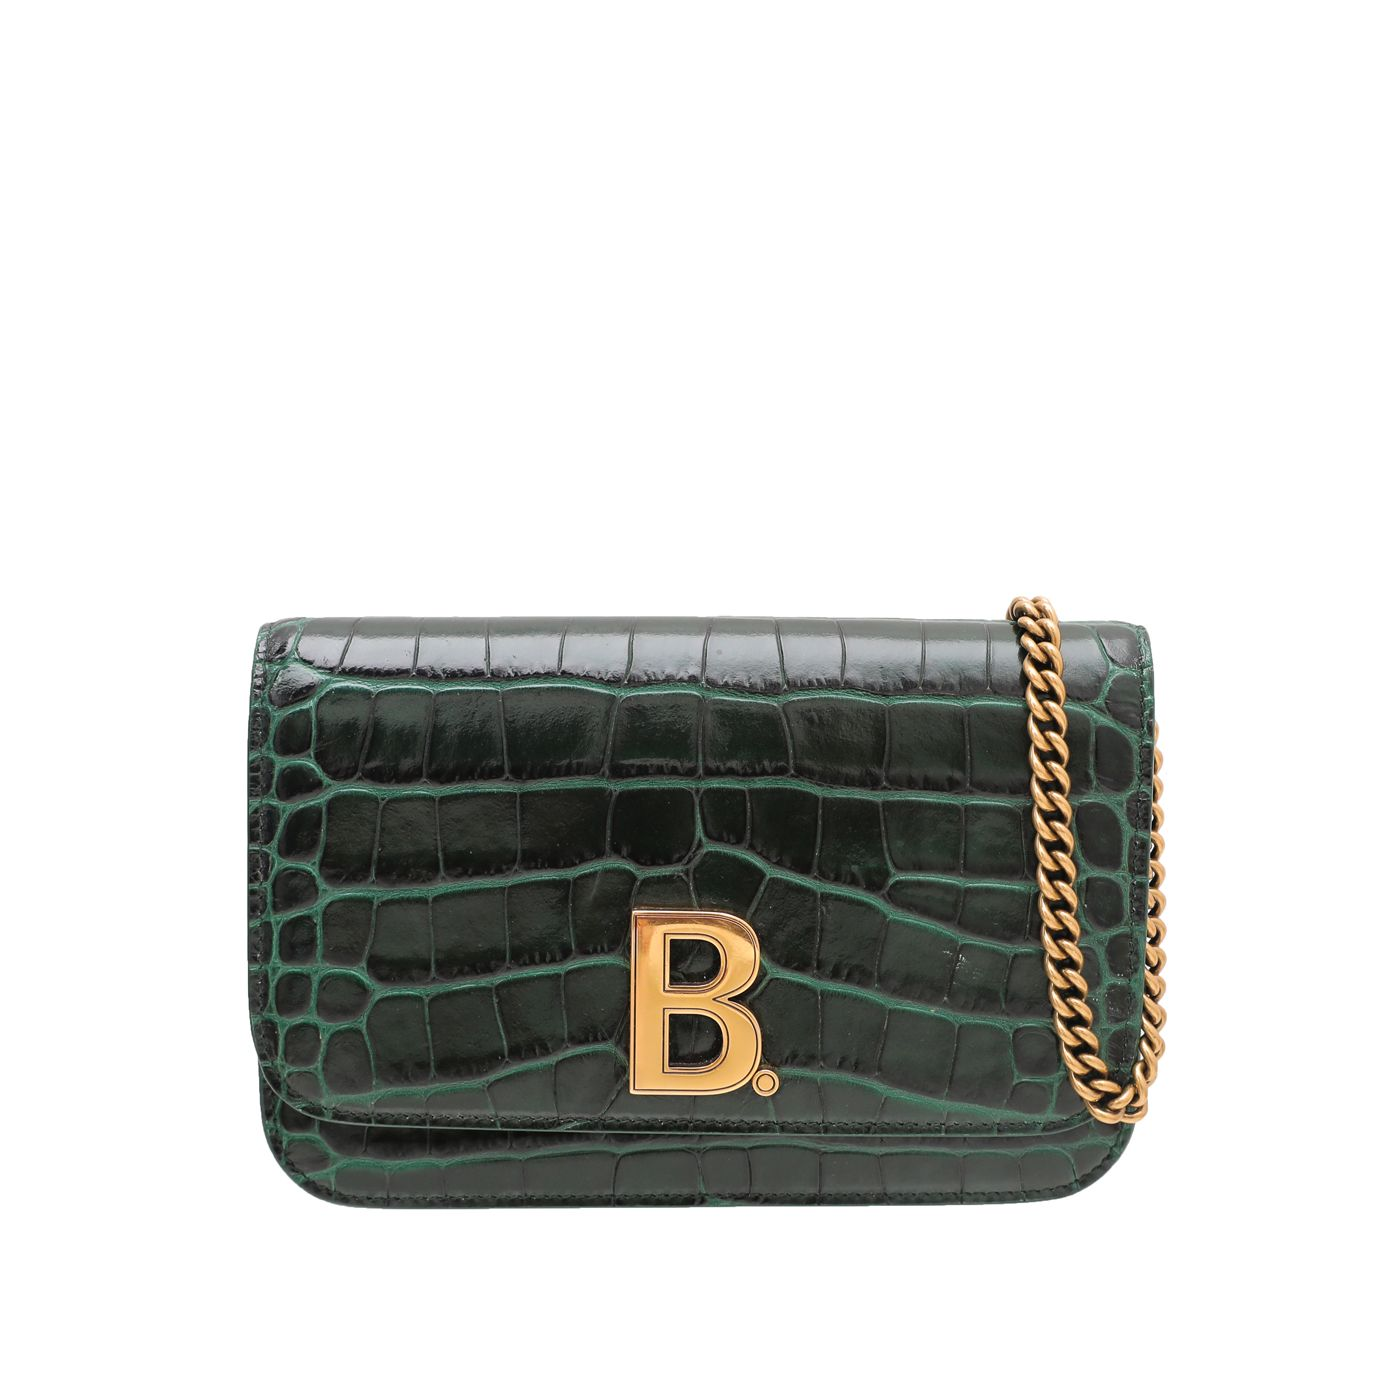 Balenciaga Forest Green Croco Embossed B. Wallet On Chain